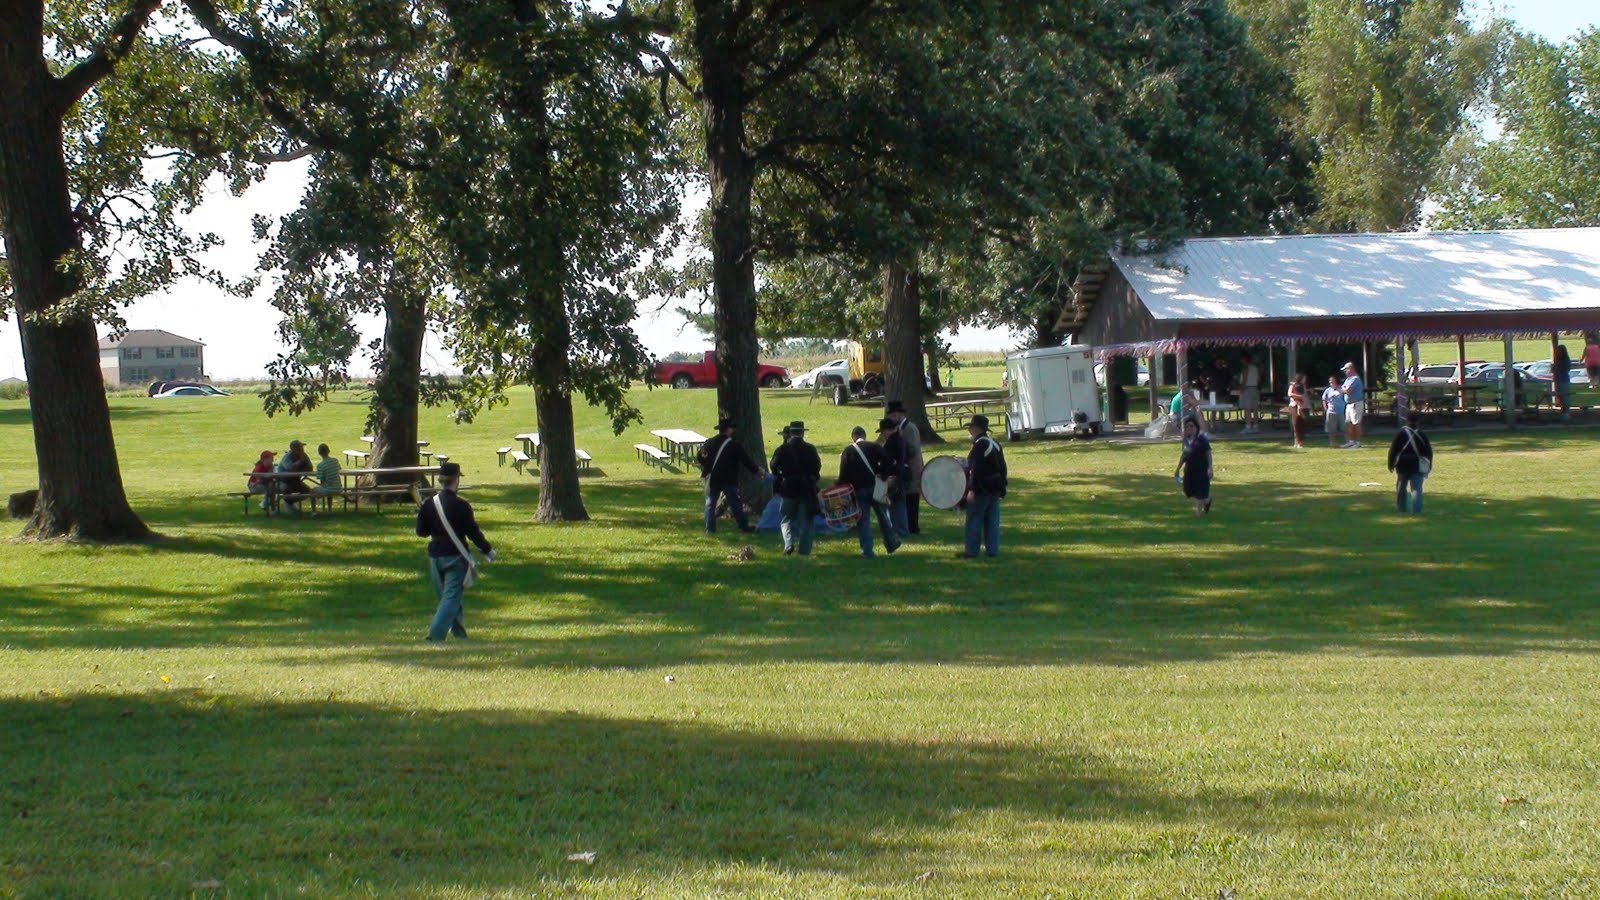 Illinois will county manhattan - Photo Of Activities At The Manhattan Park District Days Of Old At The Baker Koren Round Barn Farm Park